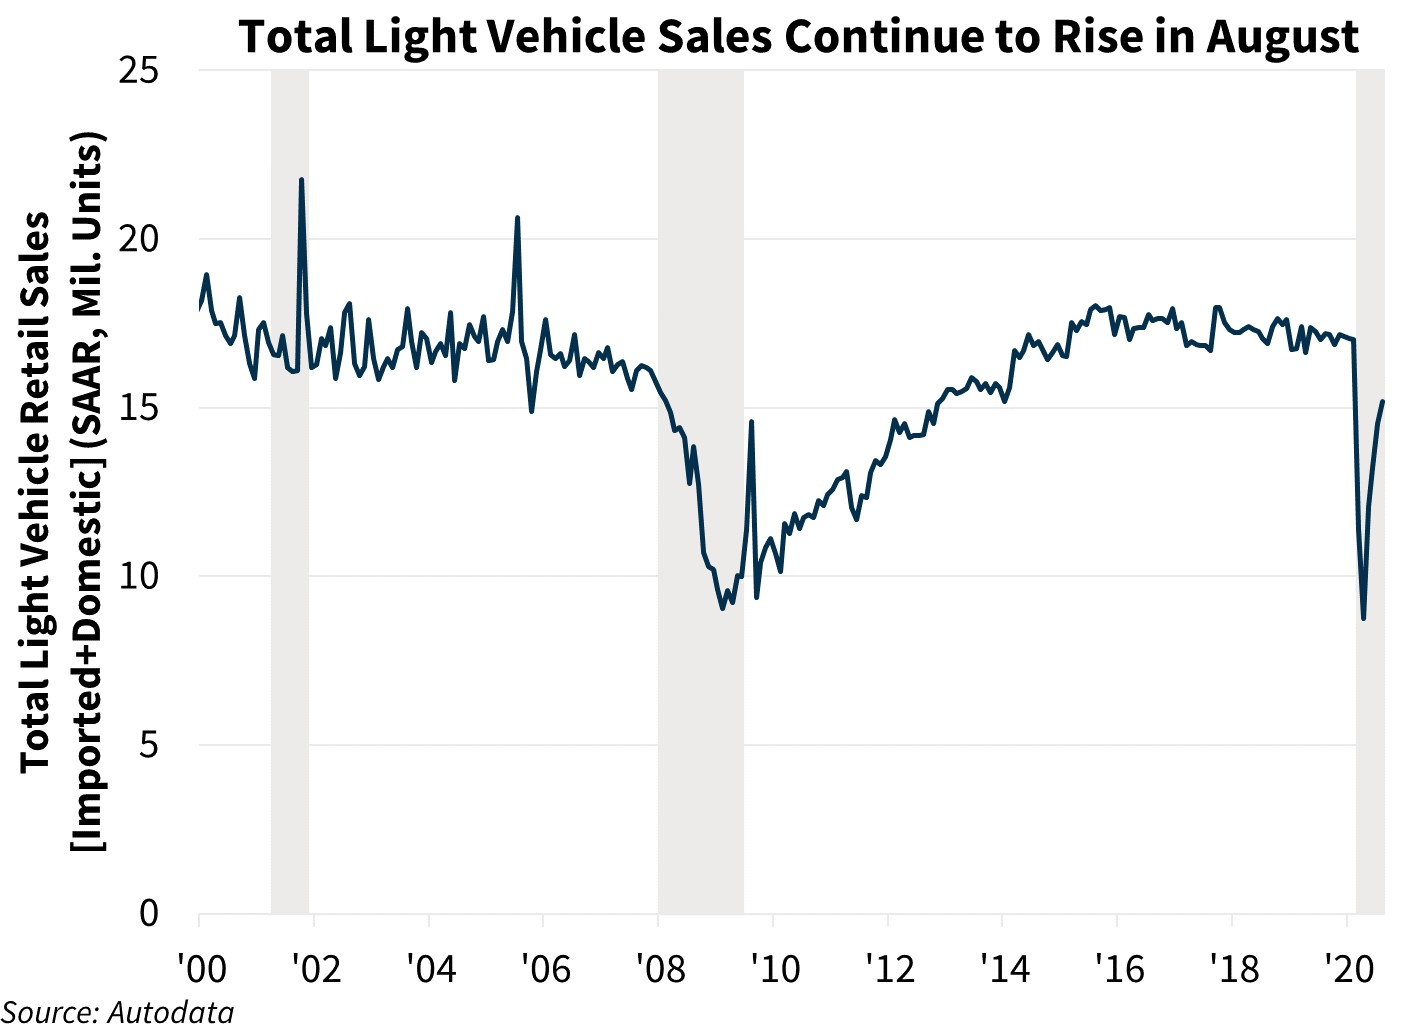 Total Light Vehicle Sales Continue to Rise in August